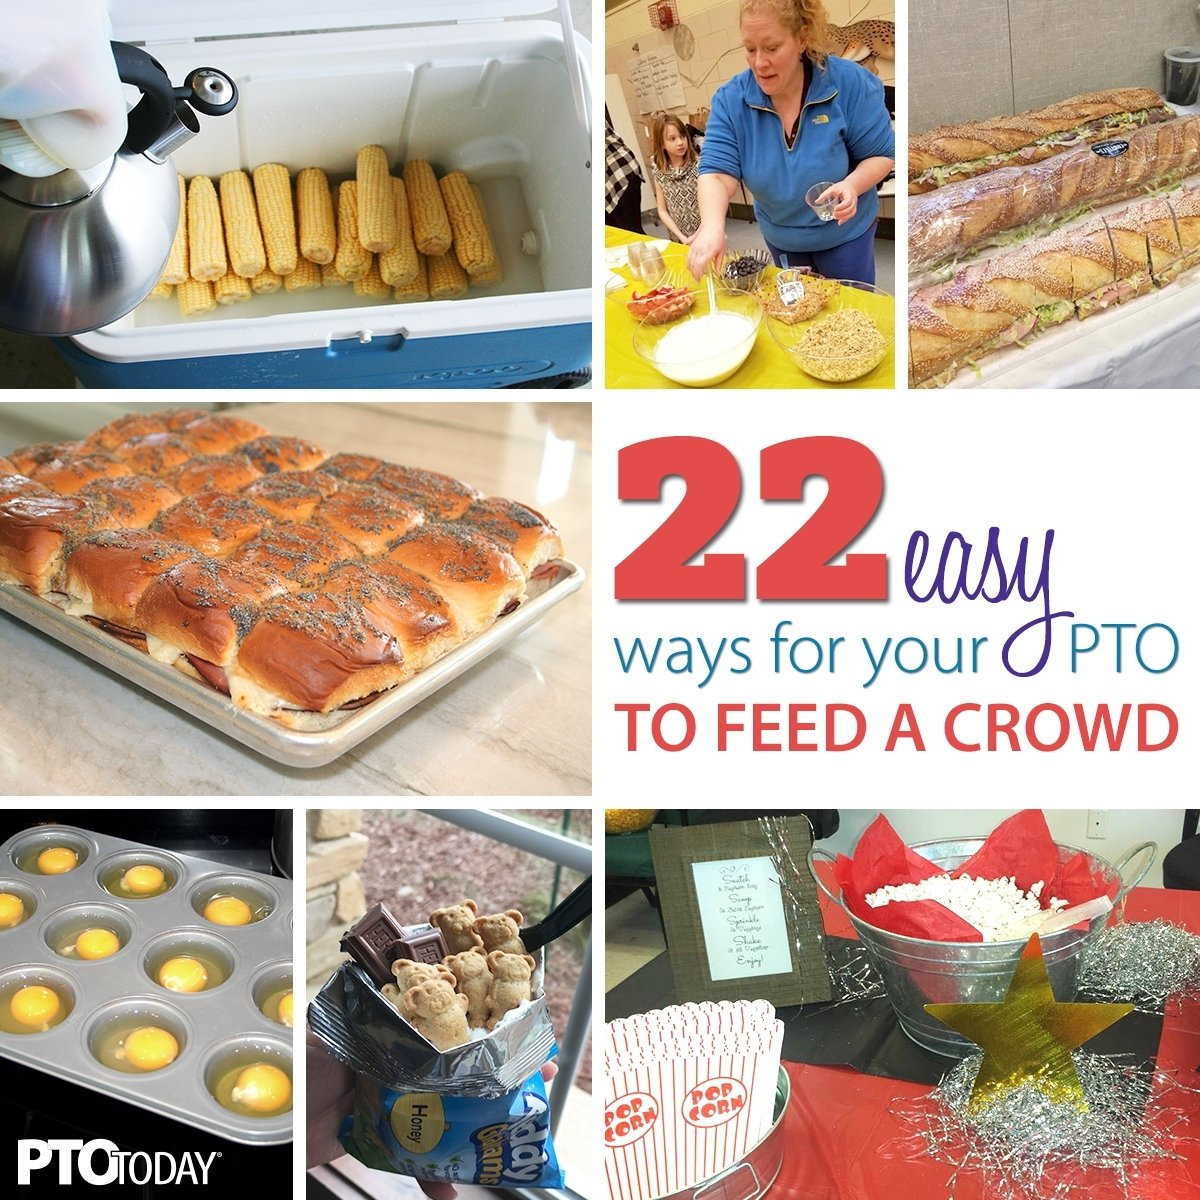 10 Ideal Breakfast Ideas For Large Groups 22 easy meal ideas for large groups pto today 1 2020